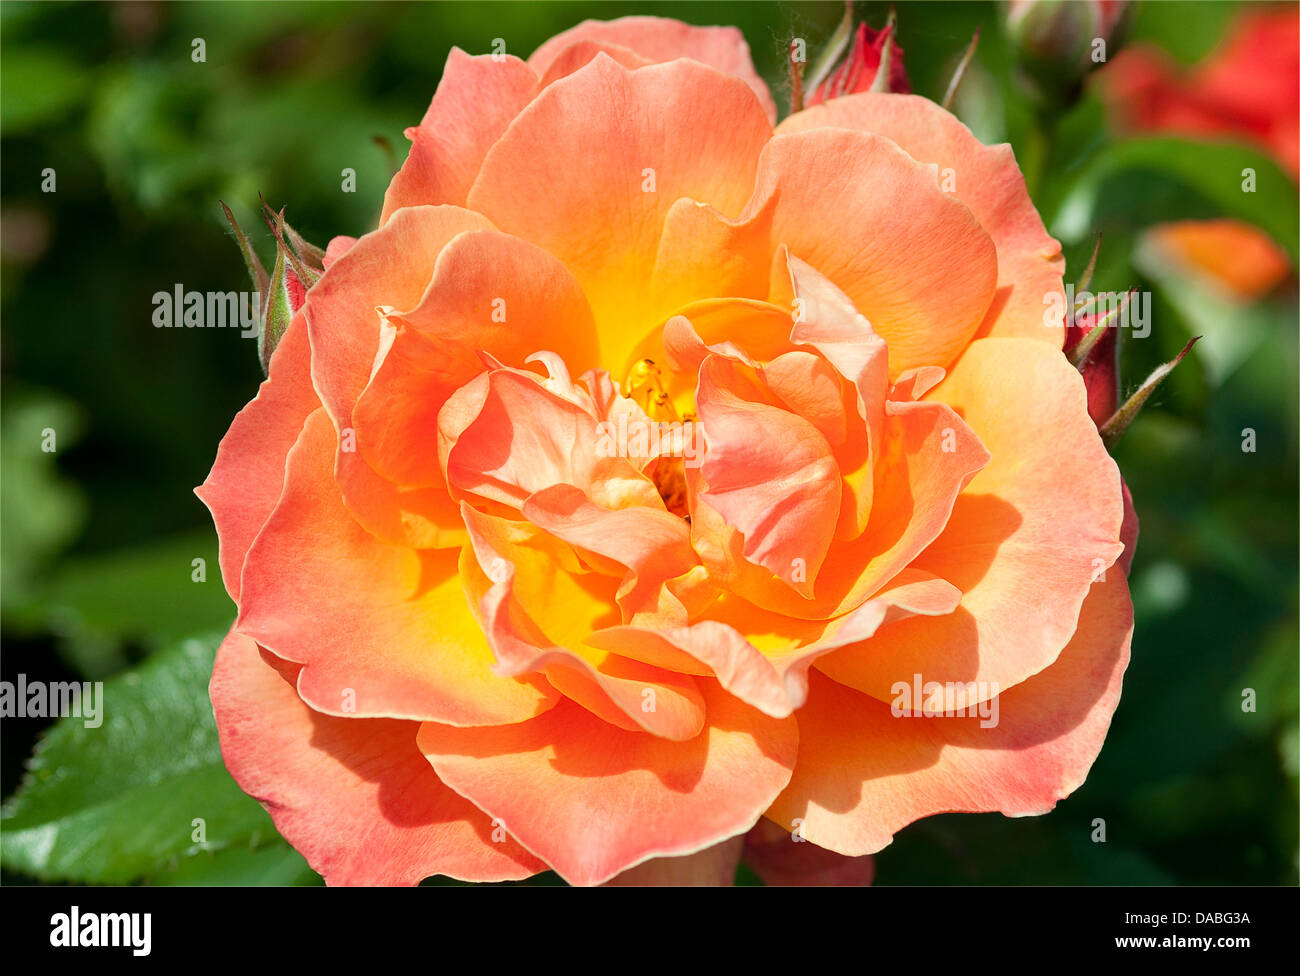 Macro shot of a two tone rose - orange and yellow - Stock Image